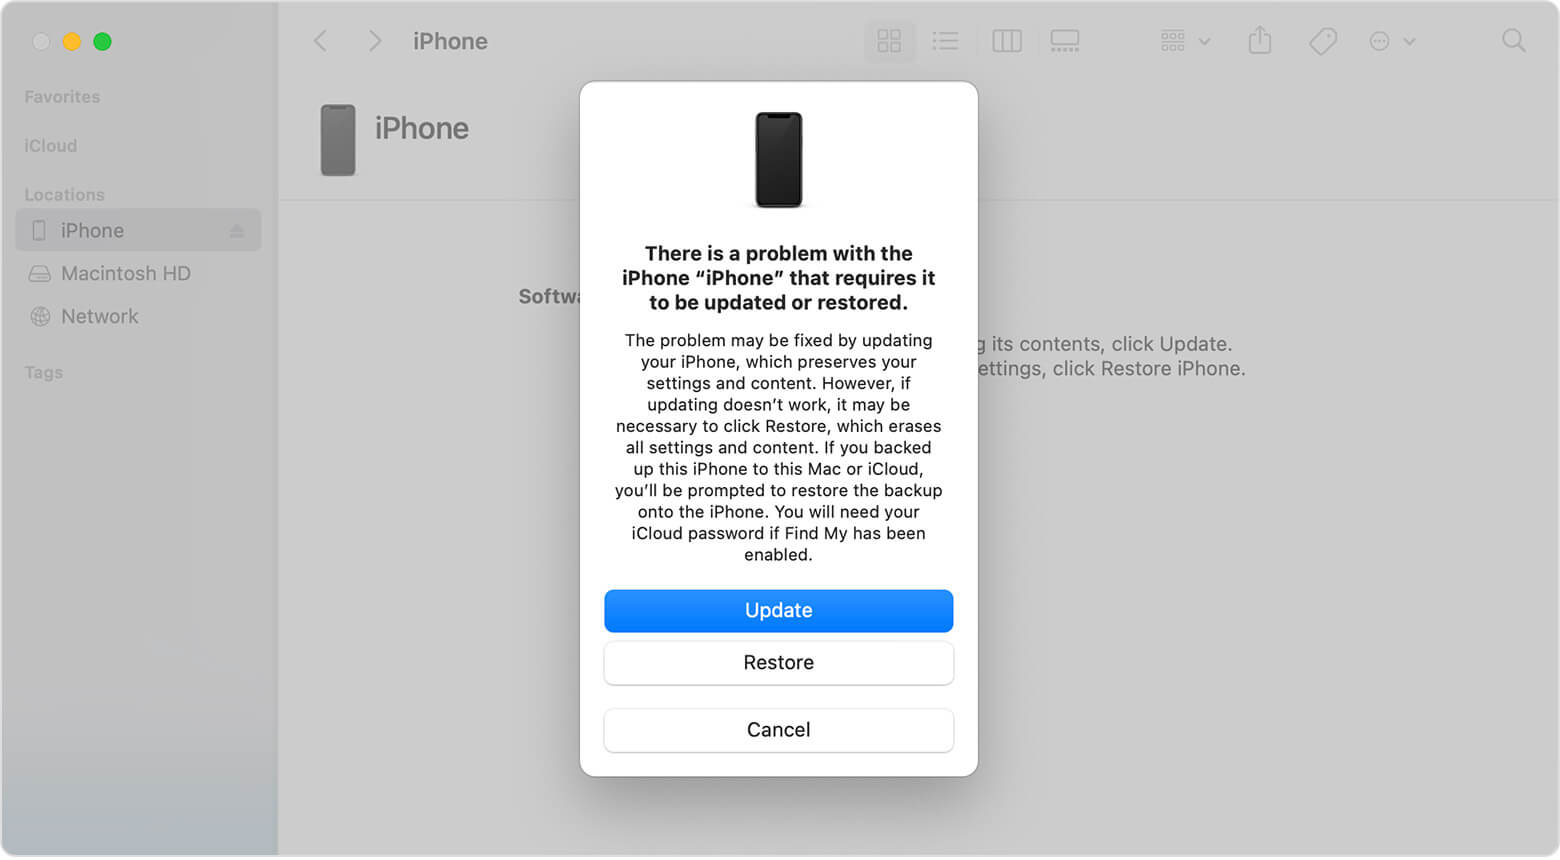 download the software for your iphone and update